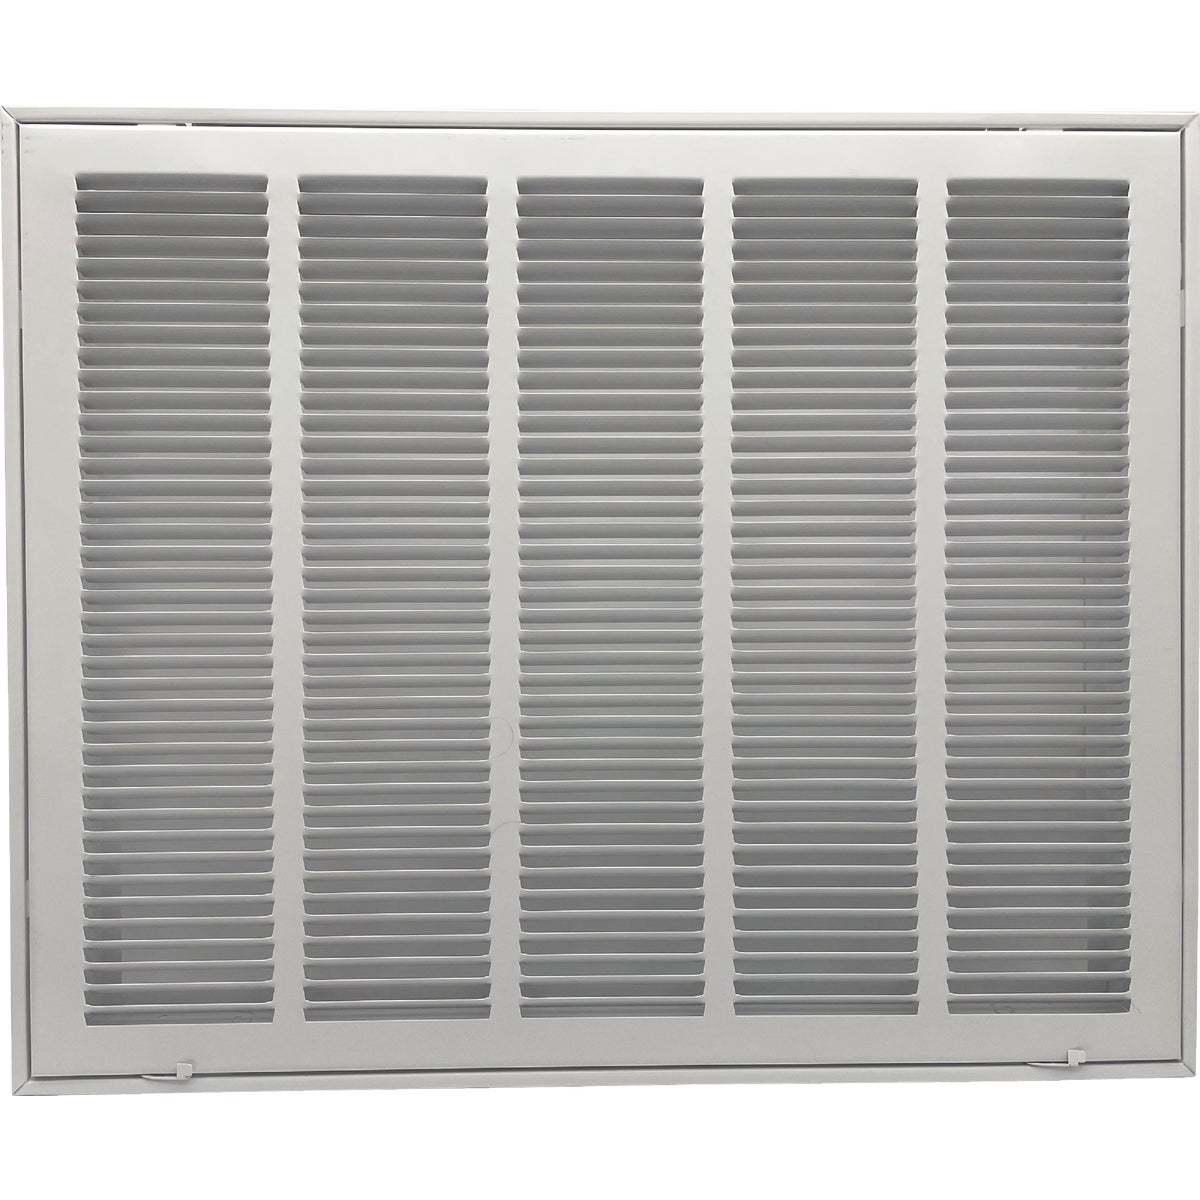 Filter Grille, ABRFWH2520